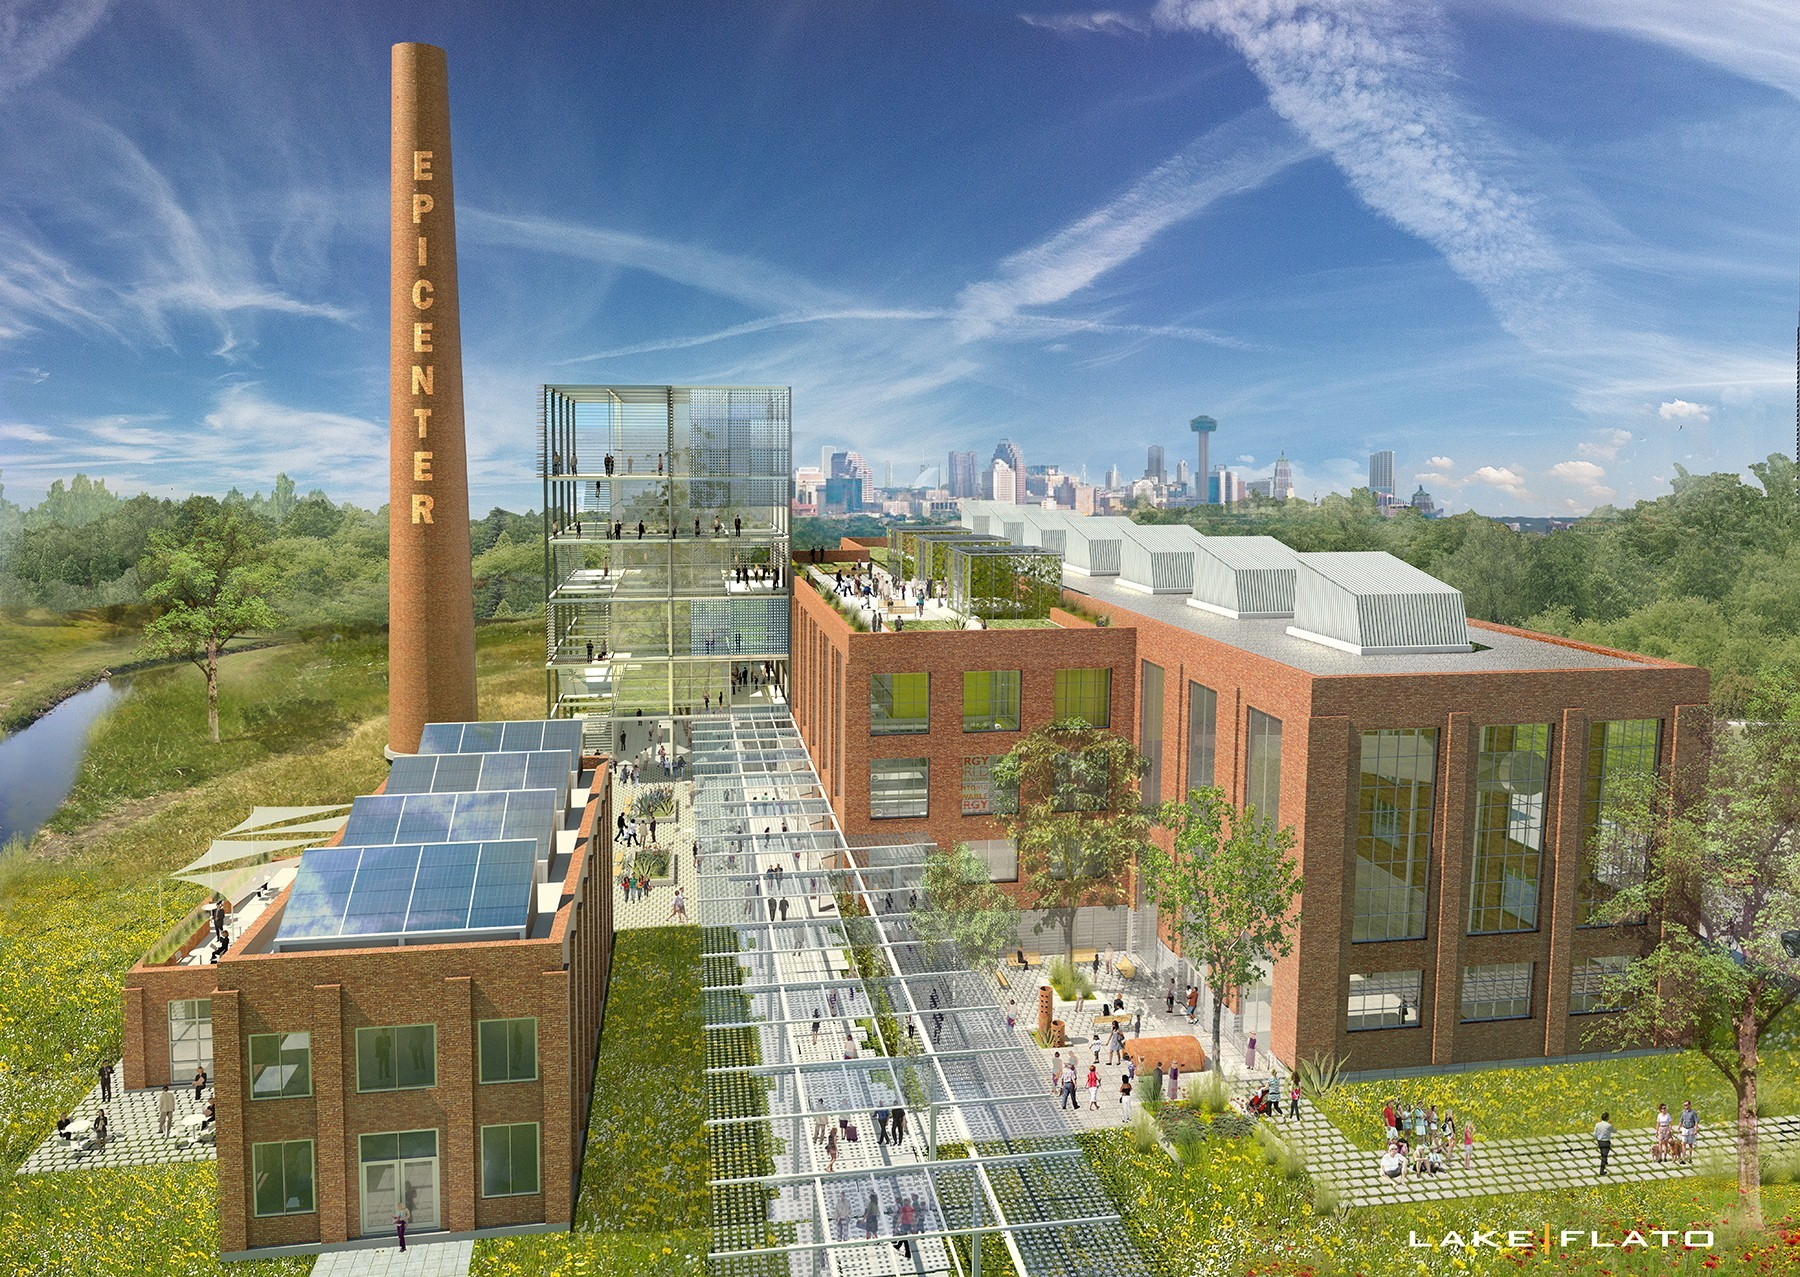 Themodern center will transform the historic Mission Road Power Plant into a world-renowned energy producer.